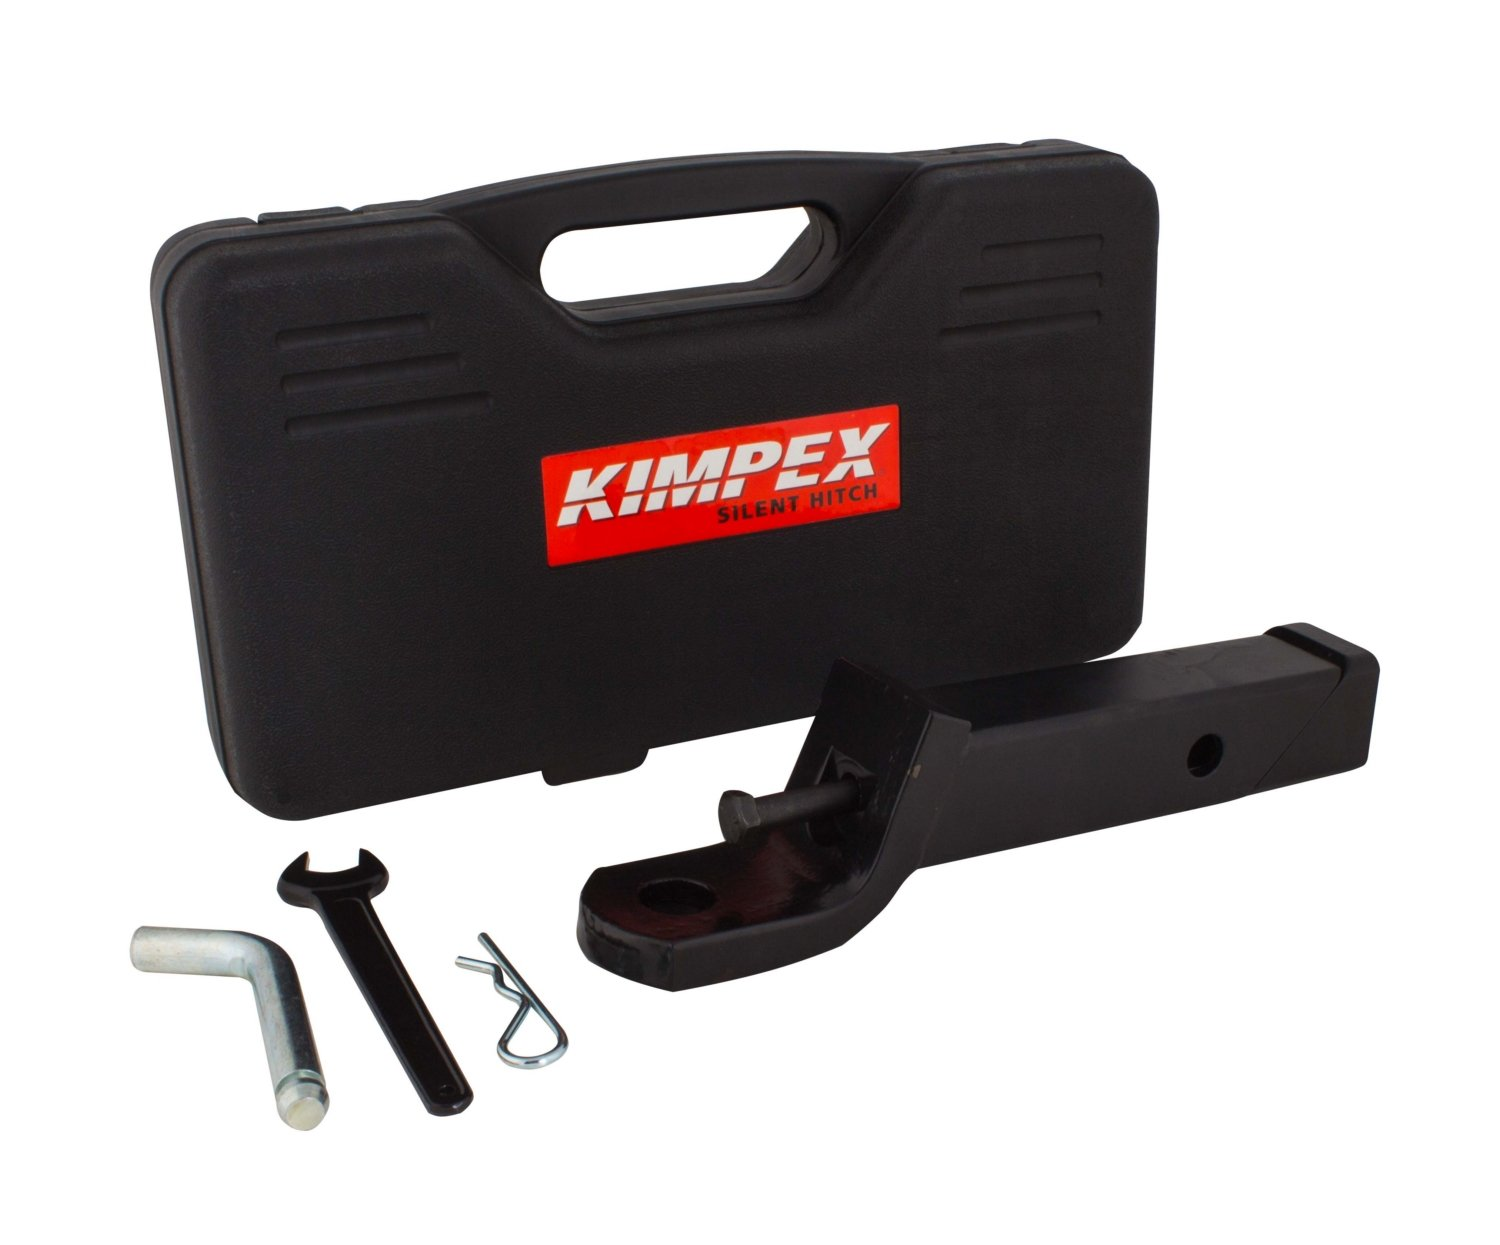 Kimpex Silent Trailer Hitch 6000 lbs